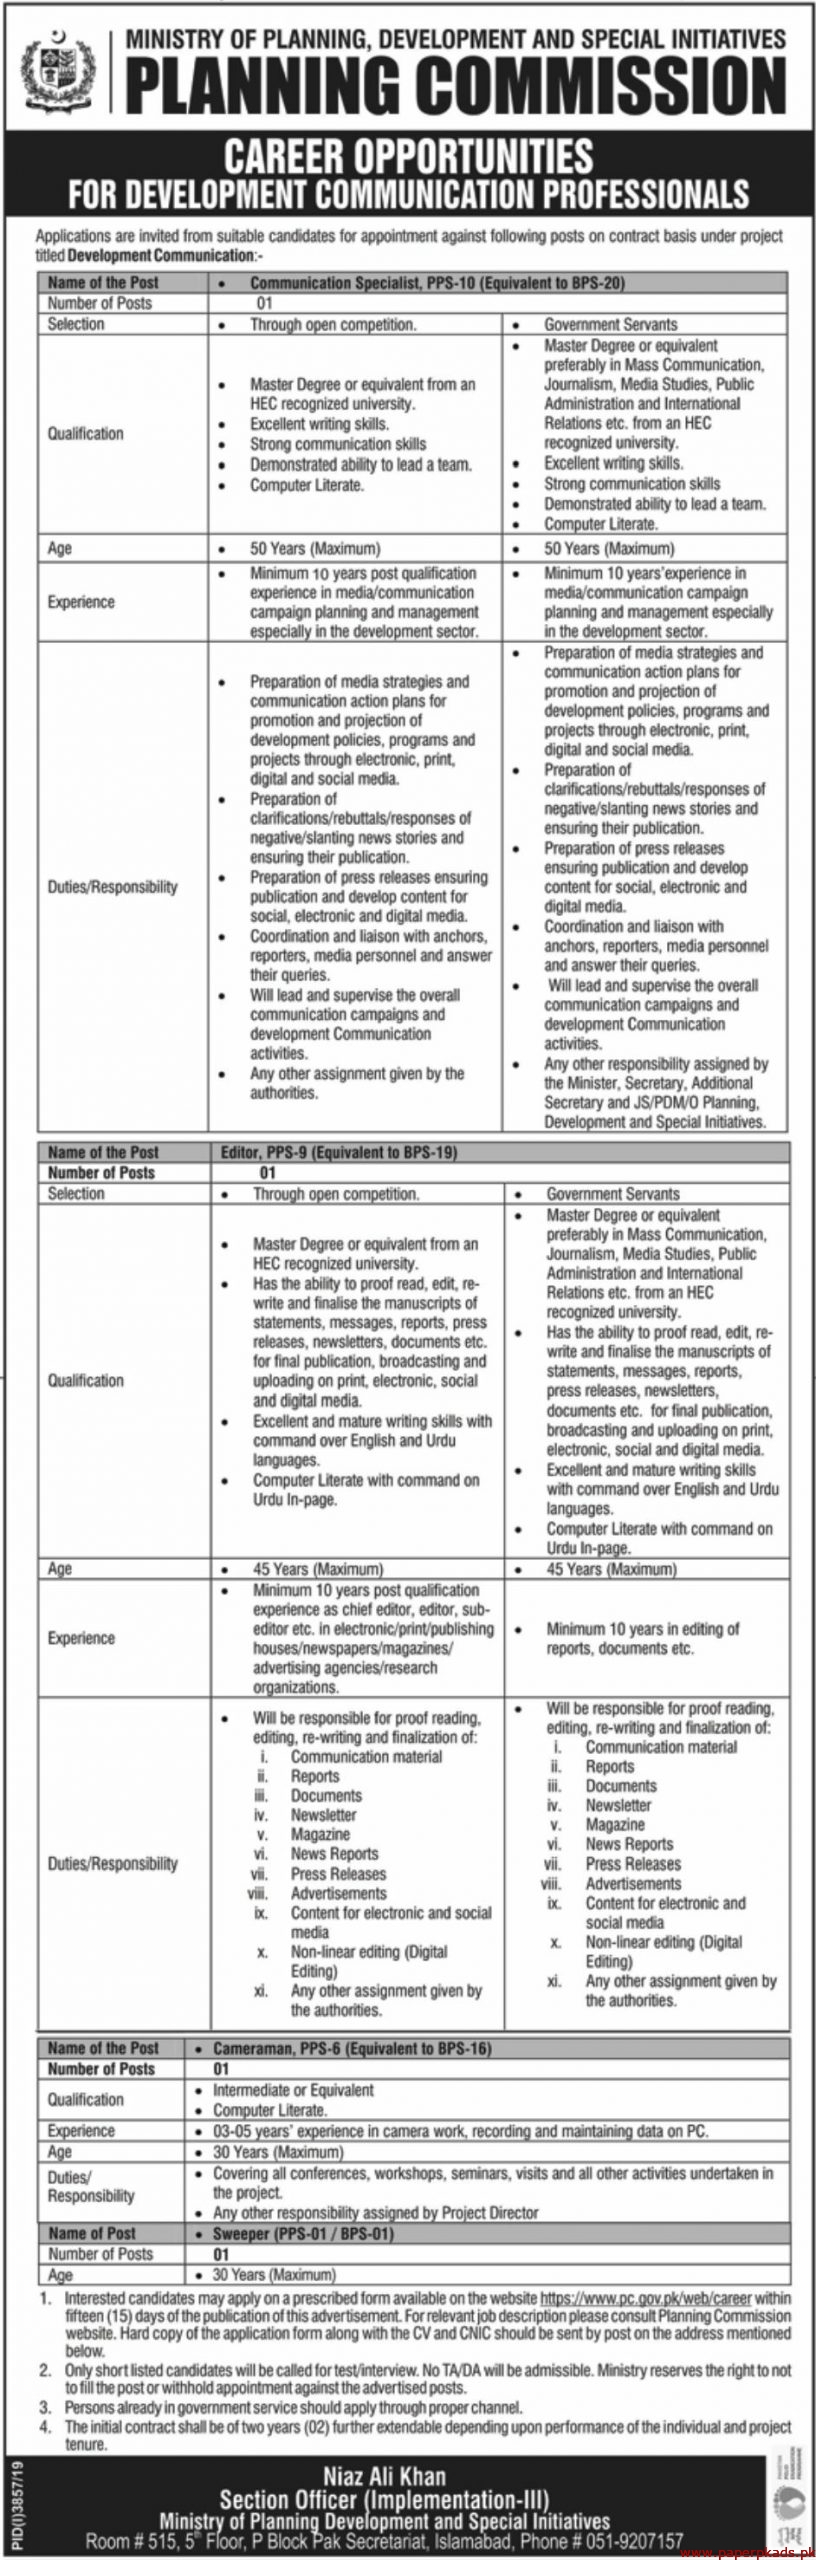 Planning Commission Jobs 2020 for Communication Specialist, Editor, Cameraman & Sweeper at Islamabad Latest